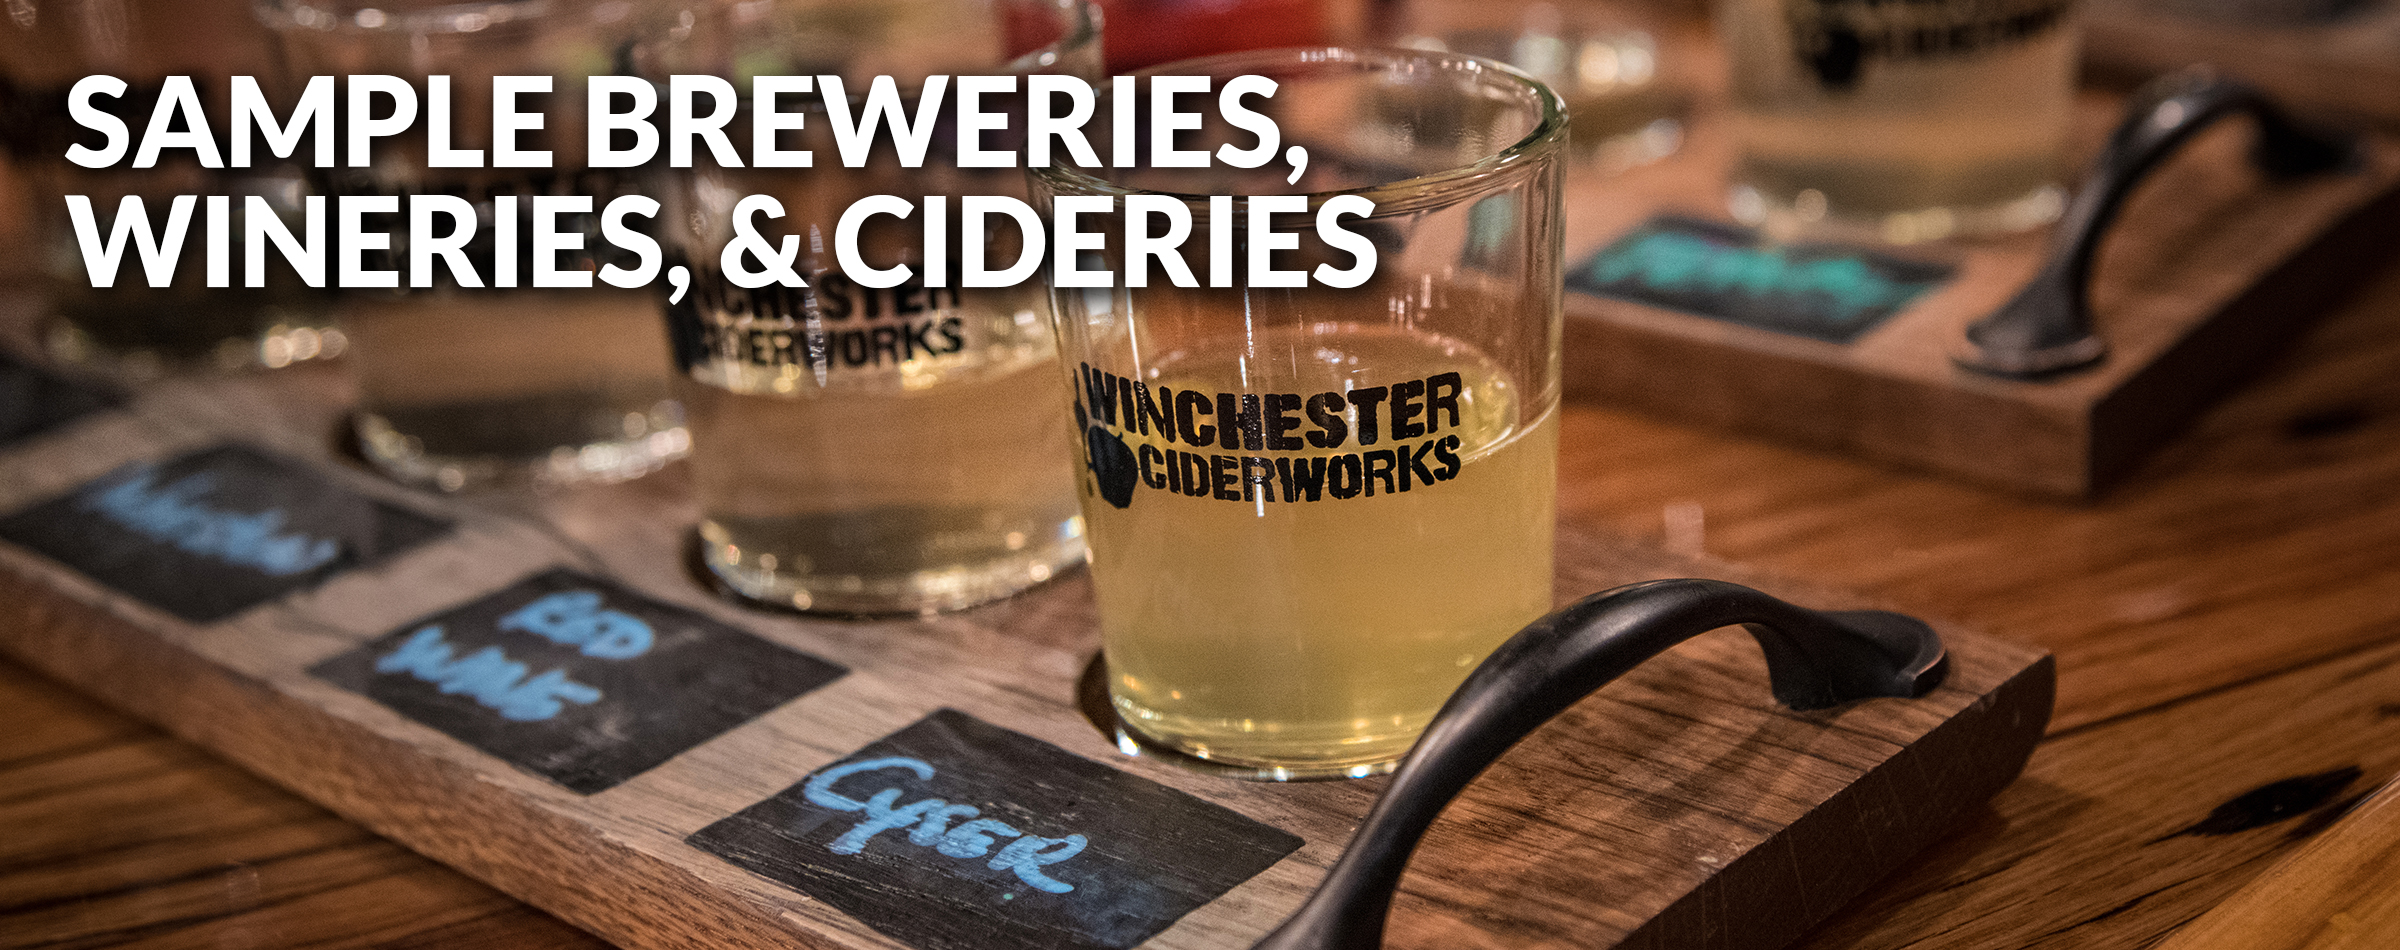 Breweries, Wineries, Cideries